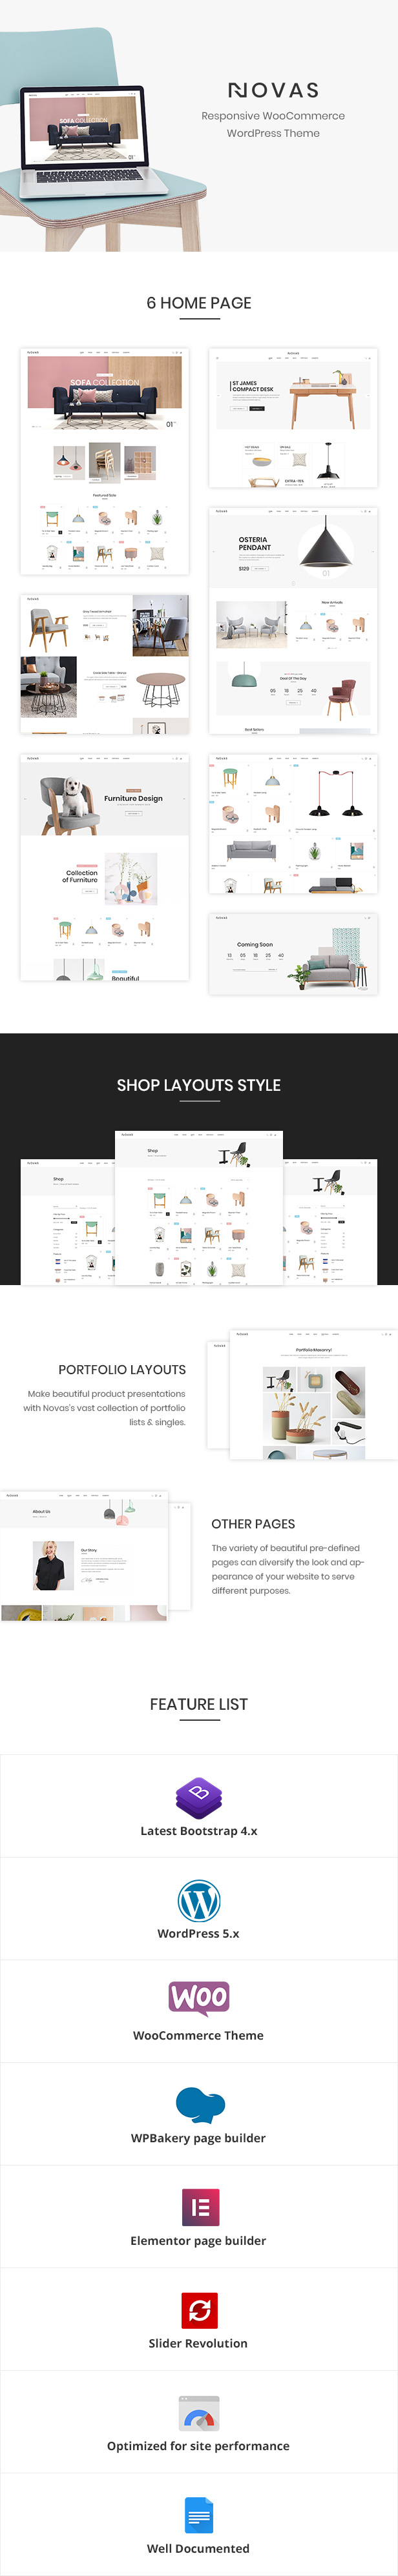 Novas | Furniture Store and Handmade Shop WordPress Theme - 1